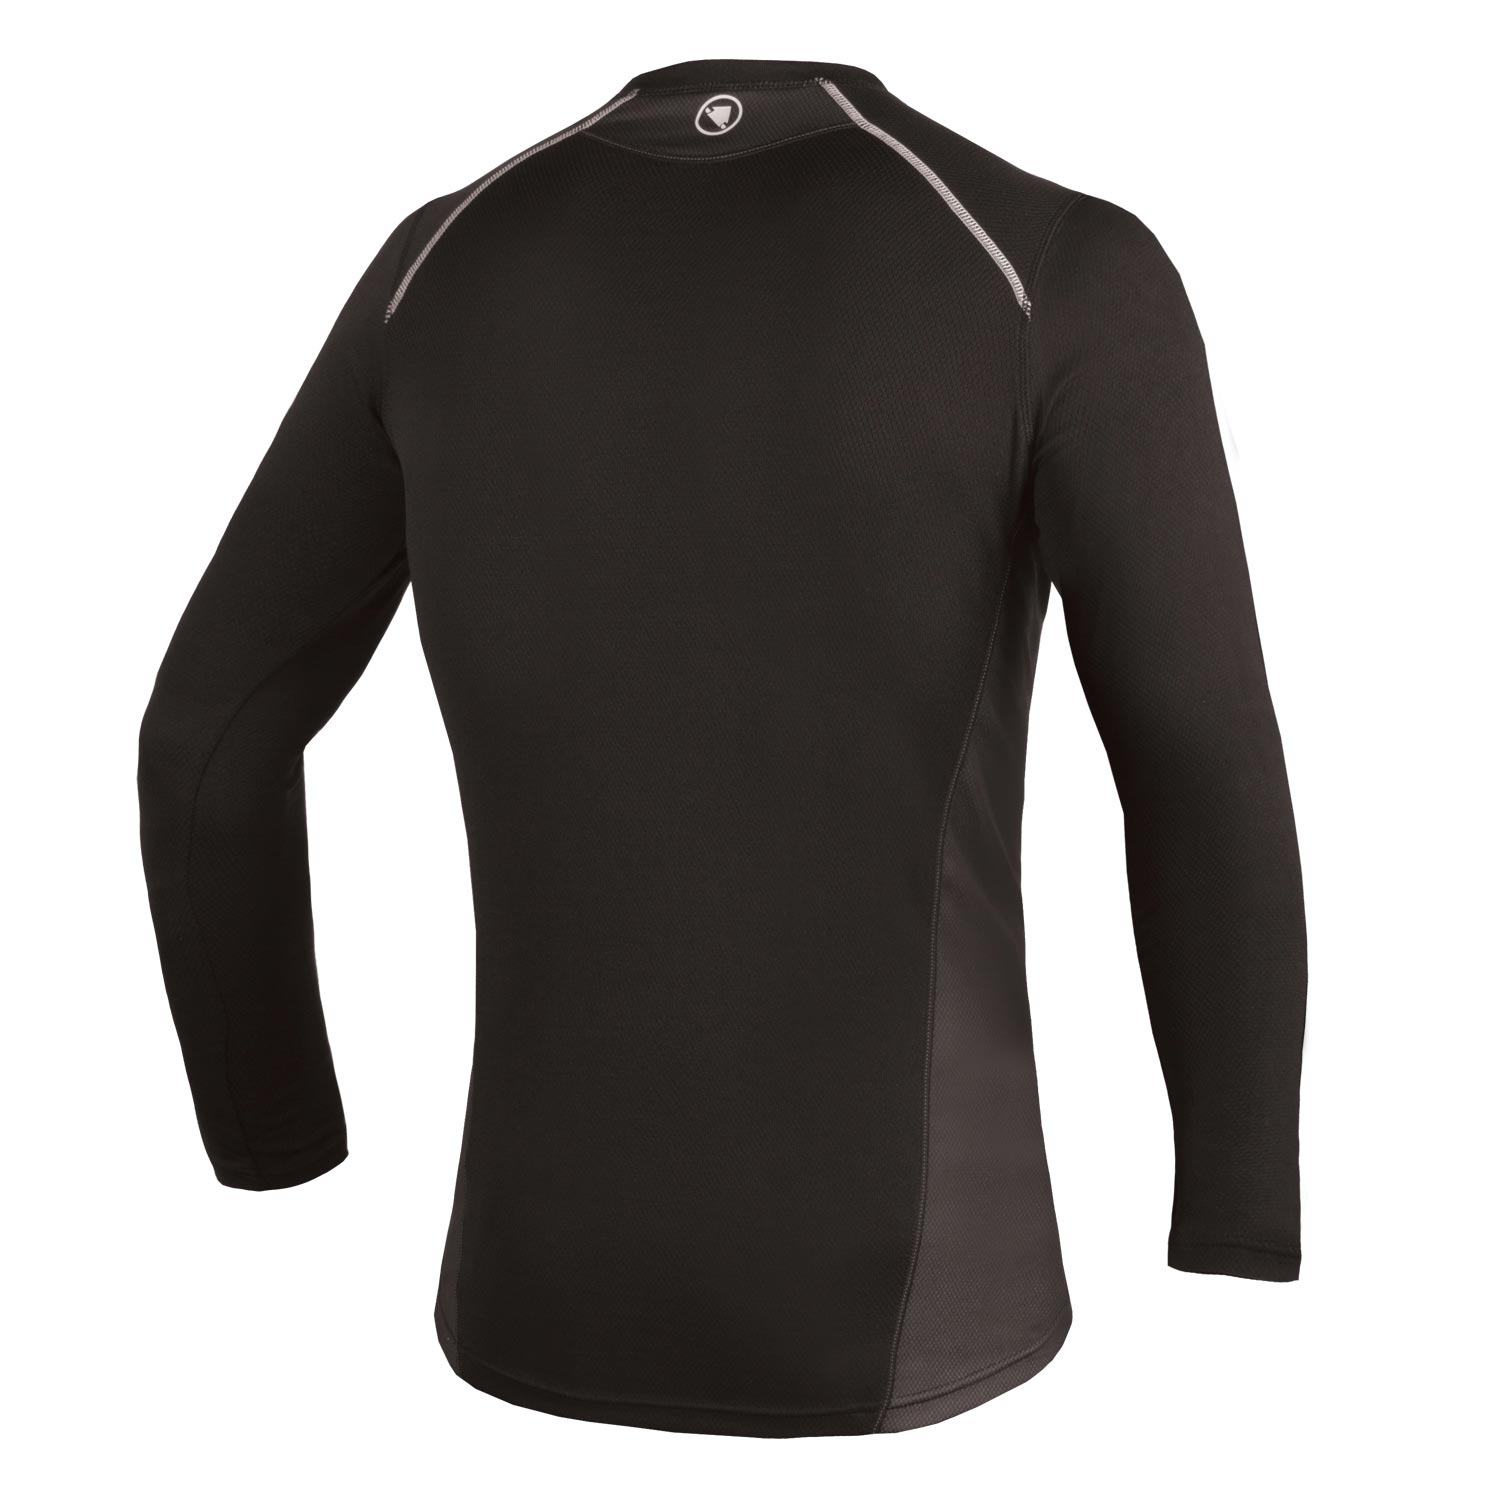 Transmission II L/S Baselayer back